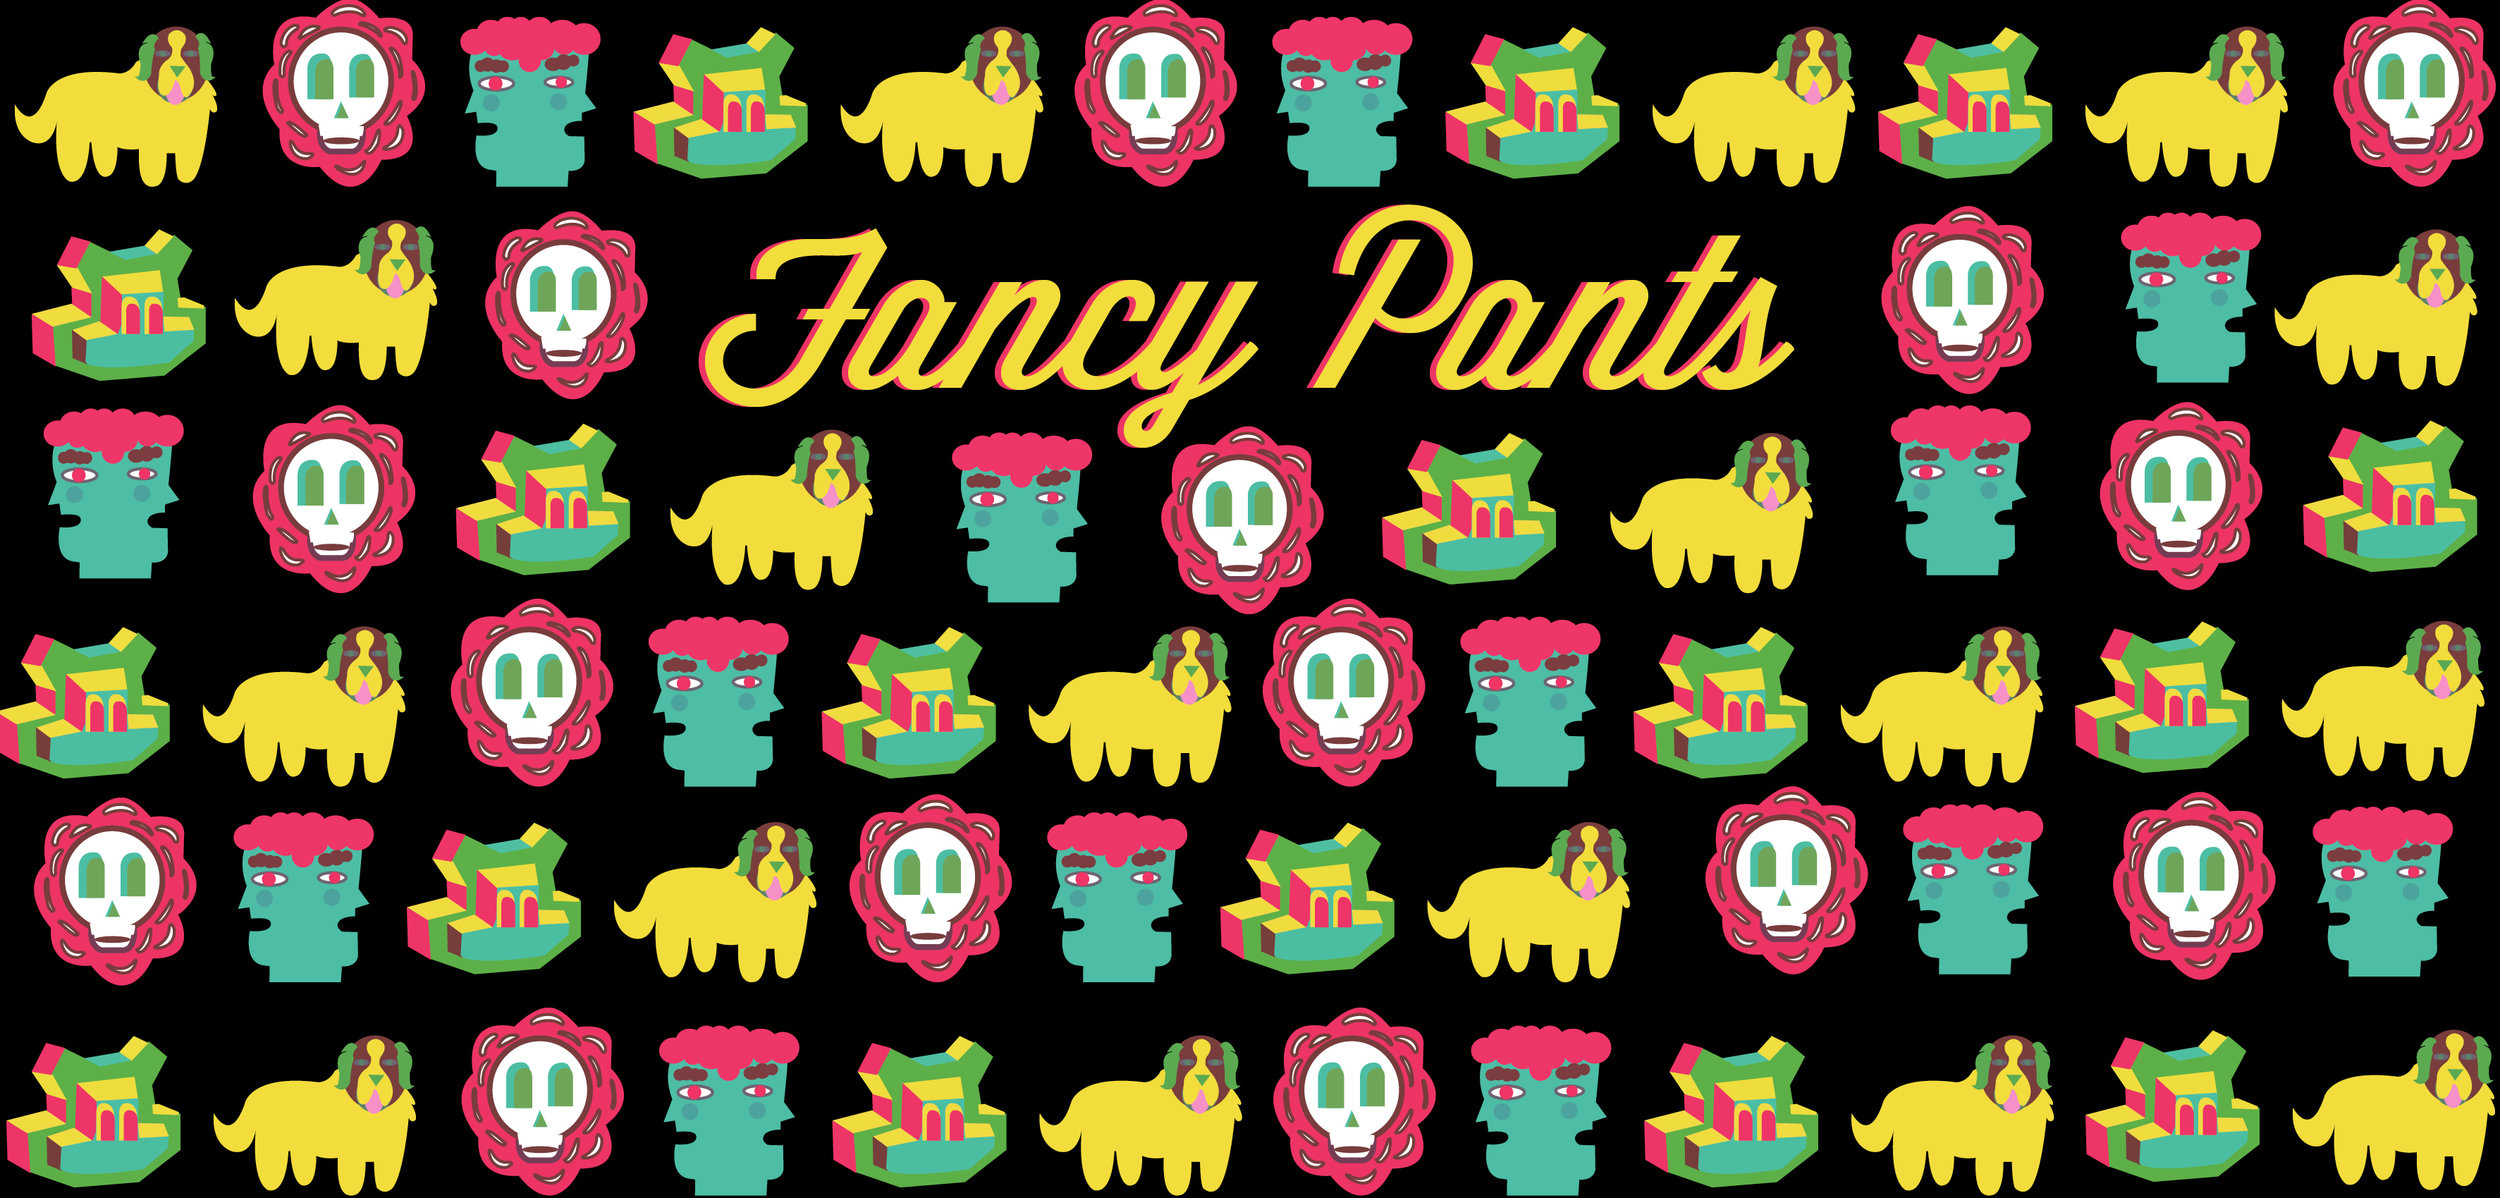 Fancy Pants the band